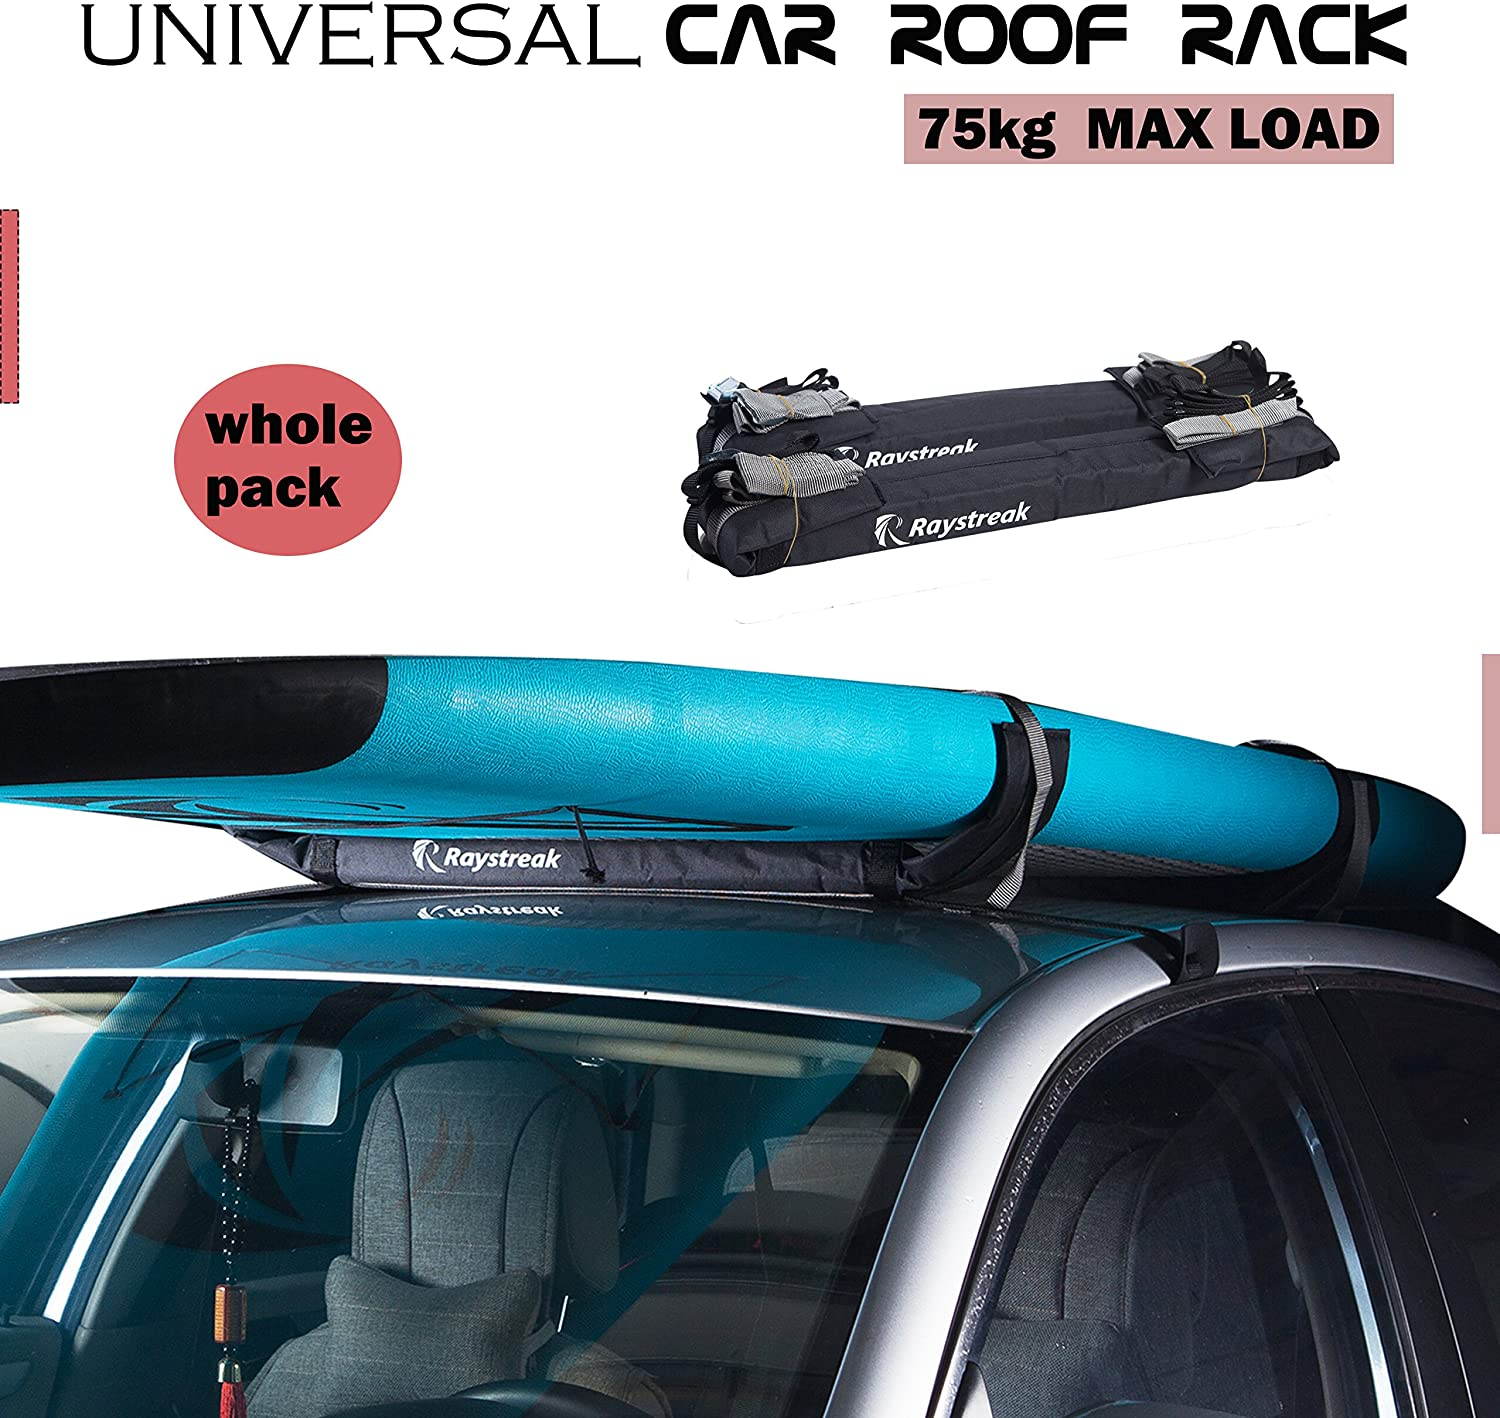 Universal Fit for Cars and SUVs Block Surf Surfboard Roof Rack